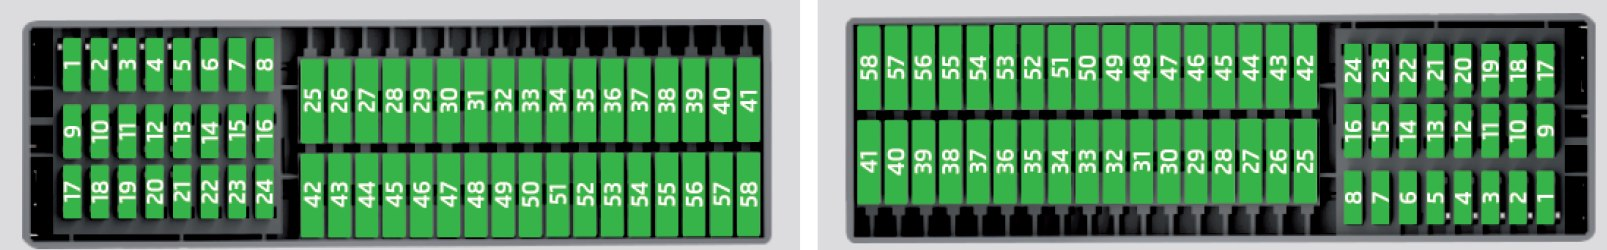 skoda rapid 2016 fuse box diagram auto genius rh autogenius info 2018 Skoda Rapid Skoda Superb